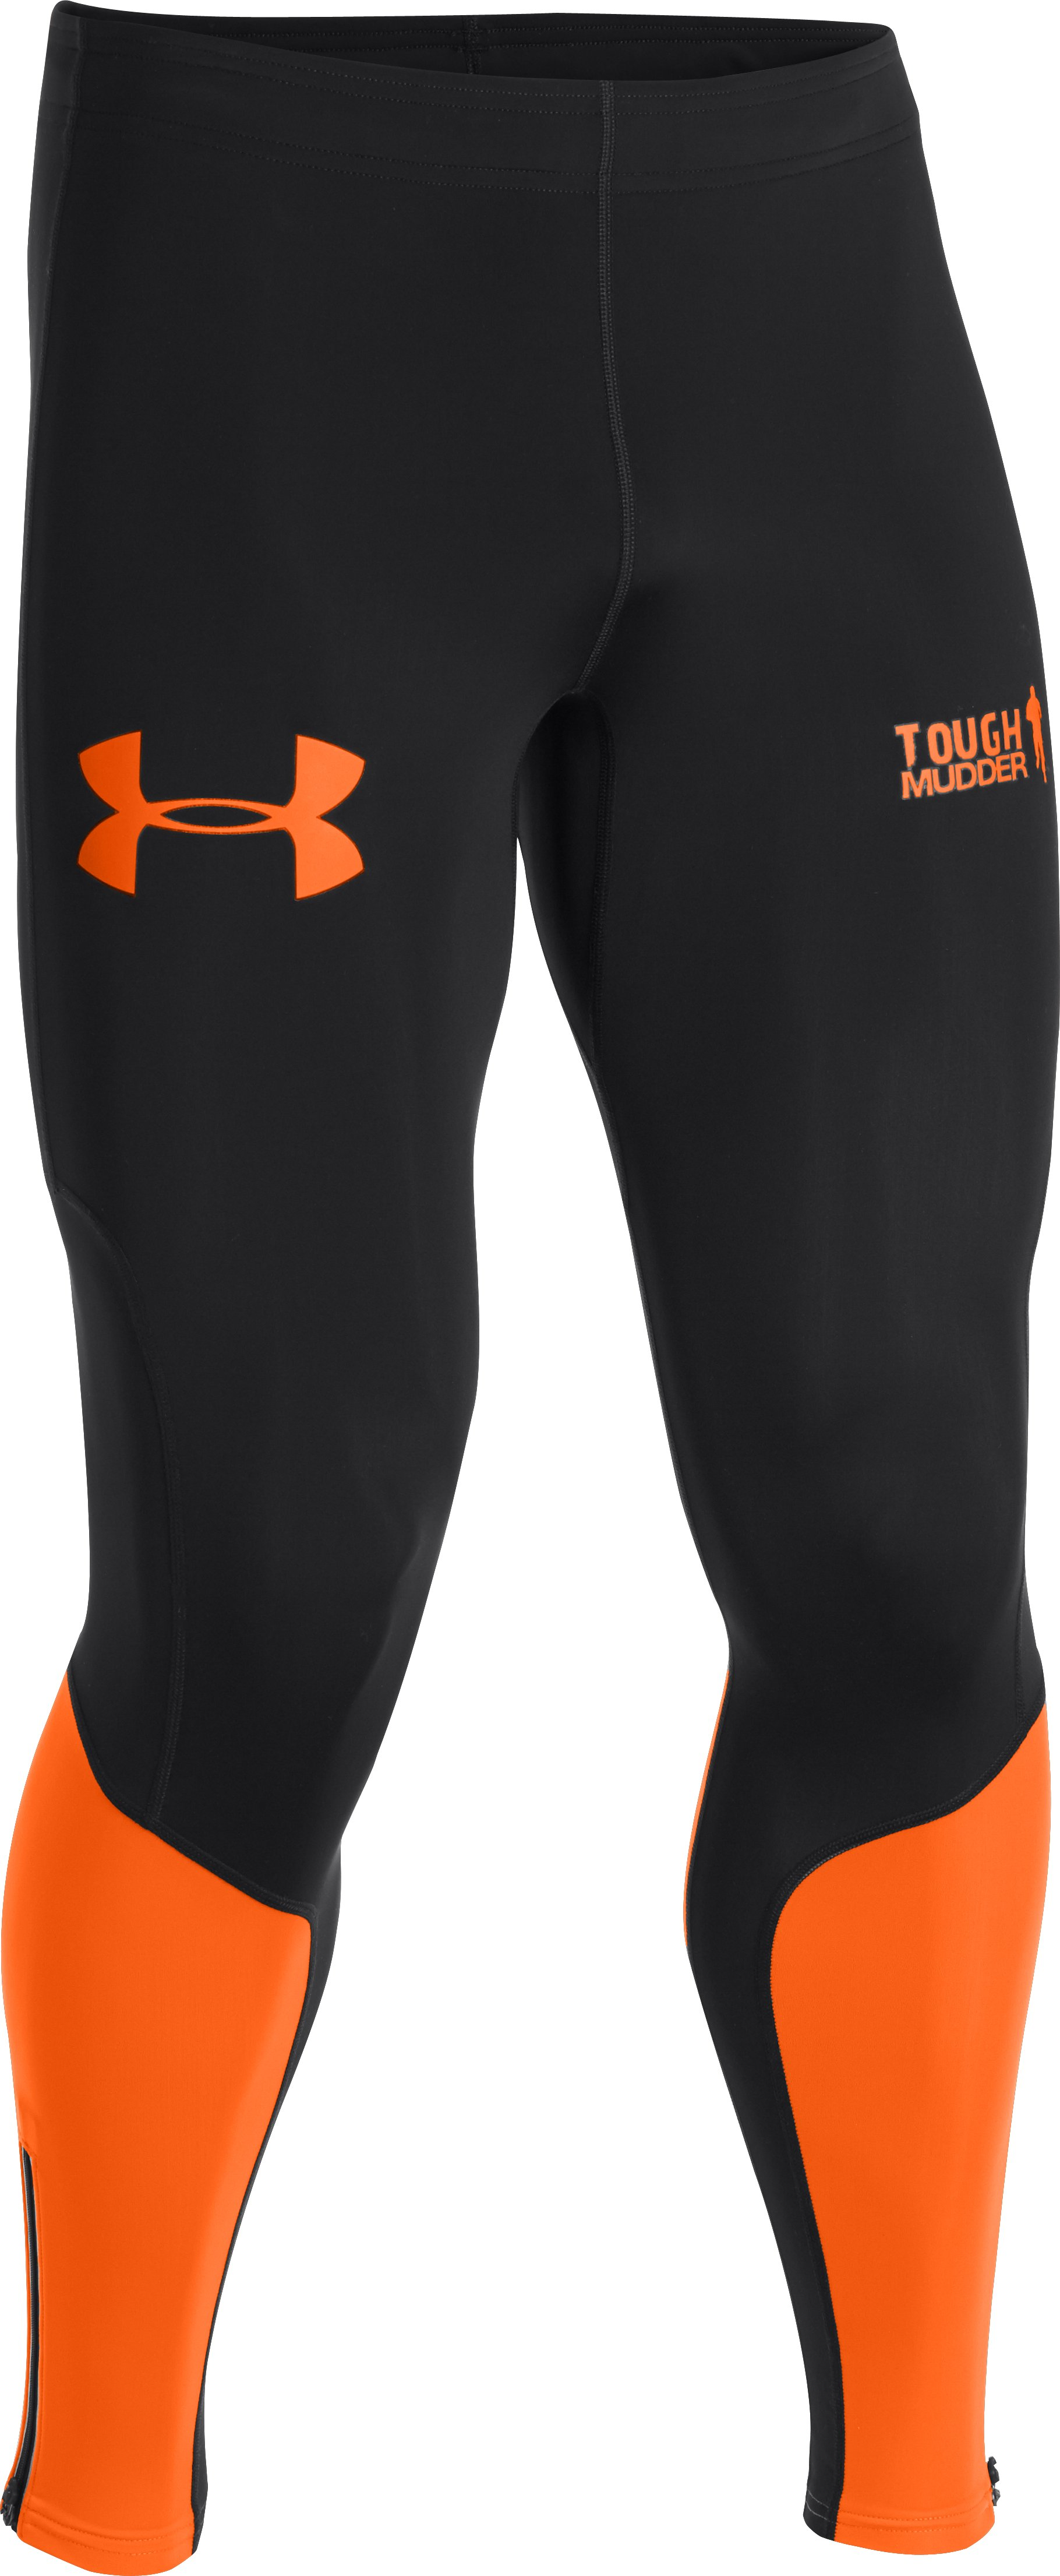 Men's UA Tough Mudder Obstacle Compression Leggings, Black , undefined